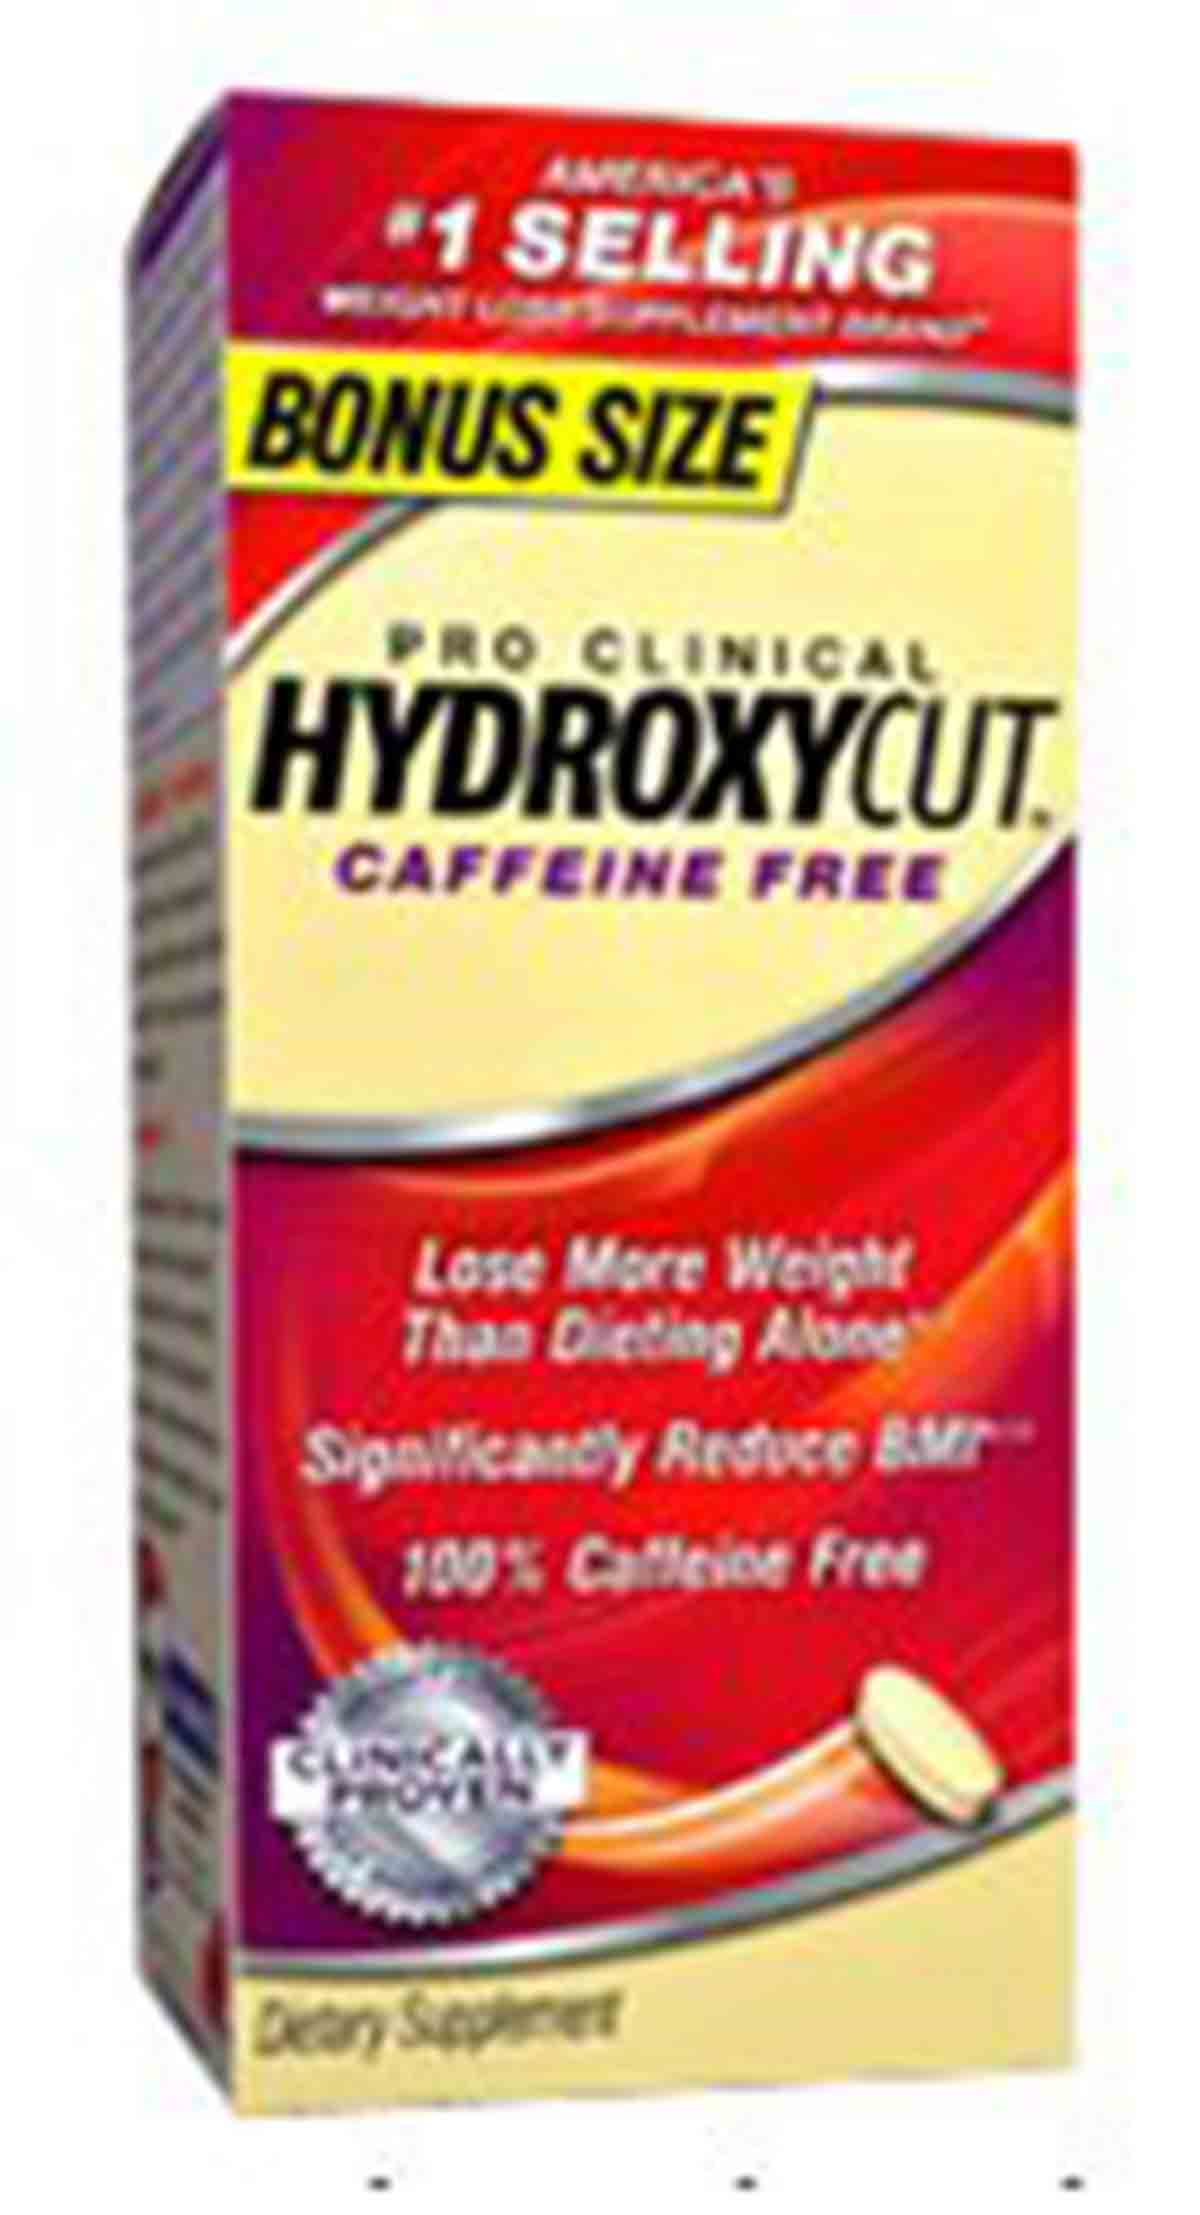 Pro Clinical Hydroxycut Caffeine Free